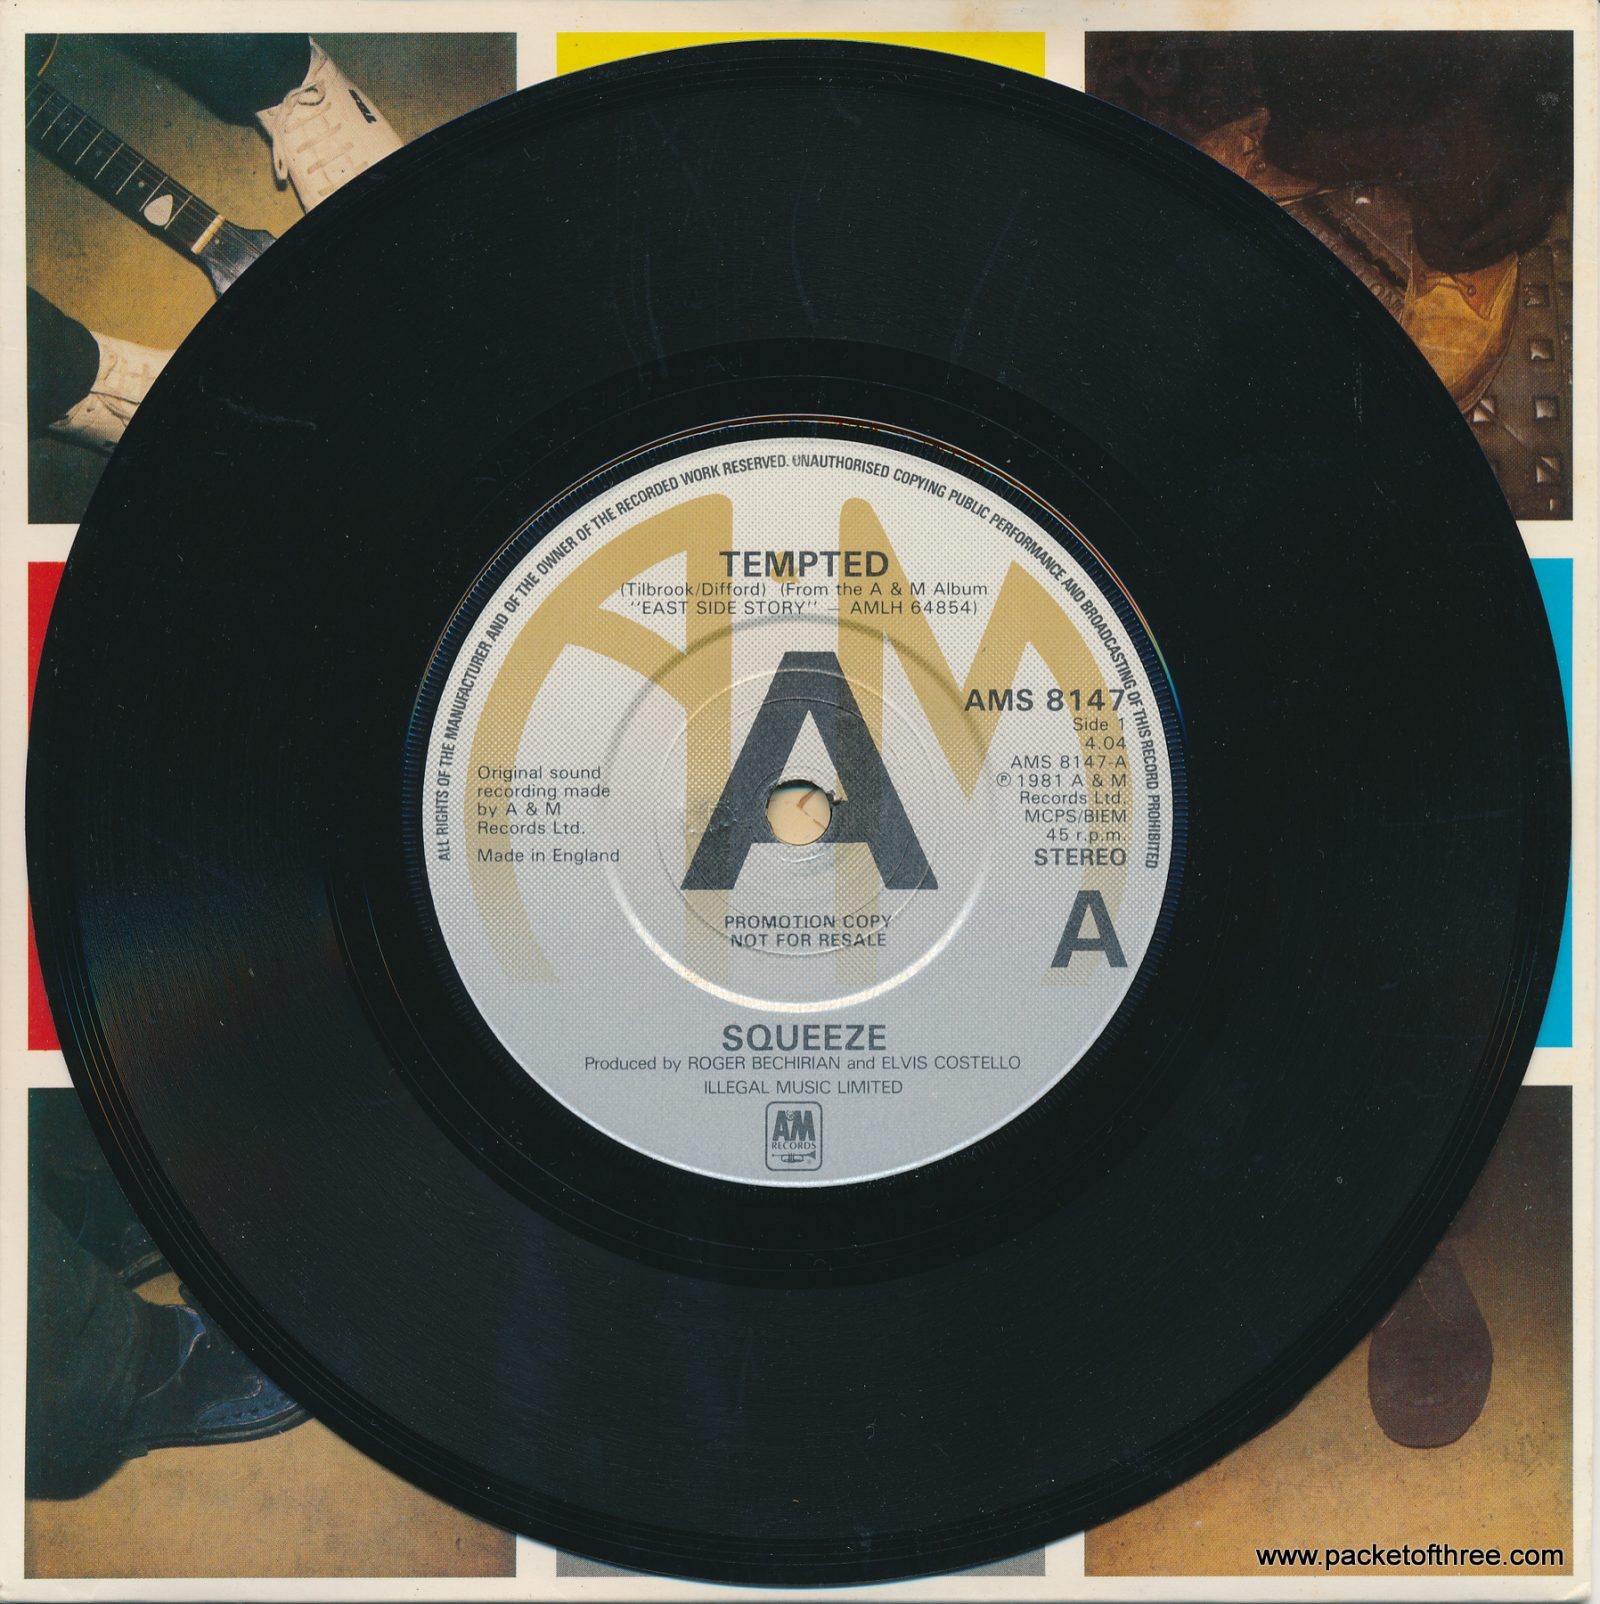 "Tempted - UK - 7"" - picture sleeve - promotional copy"